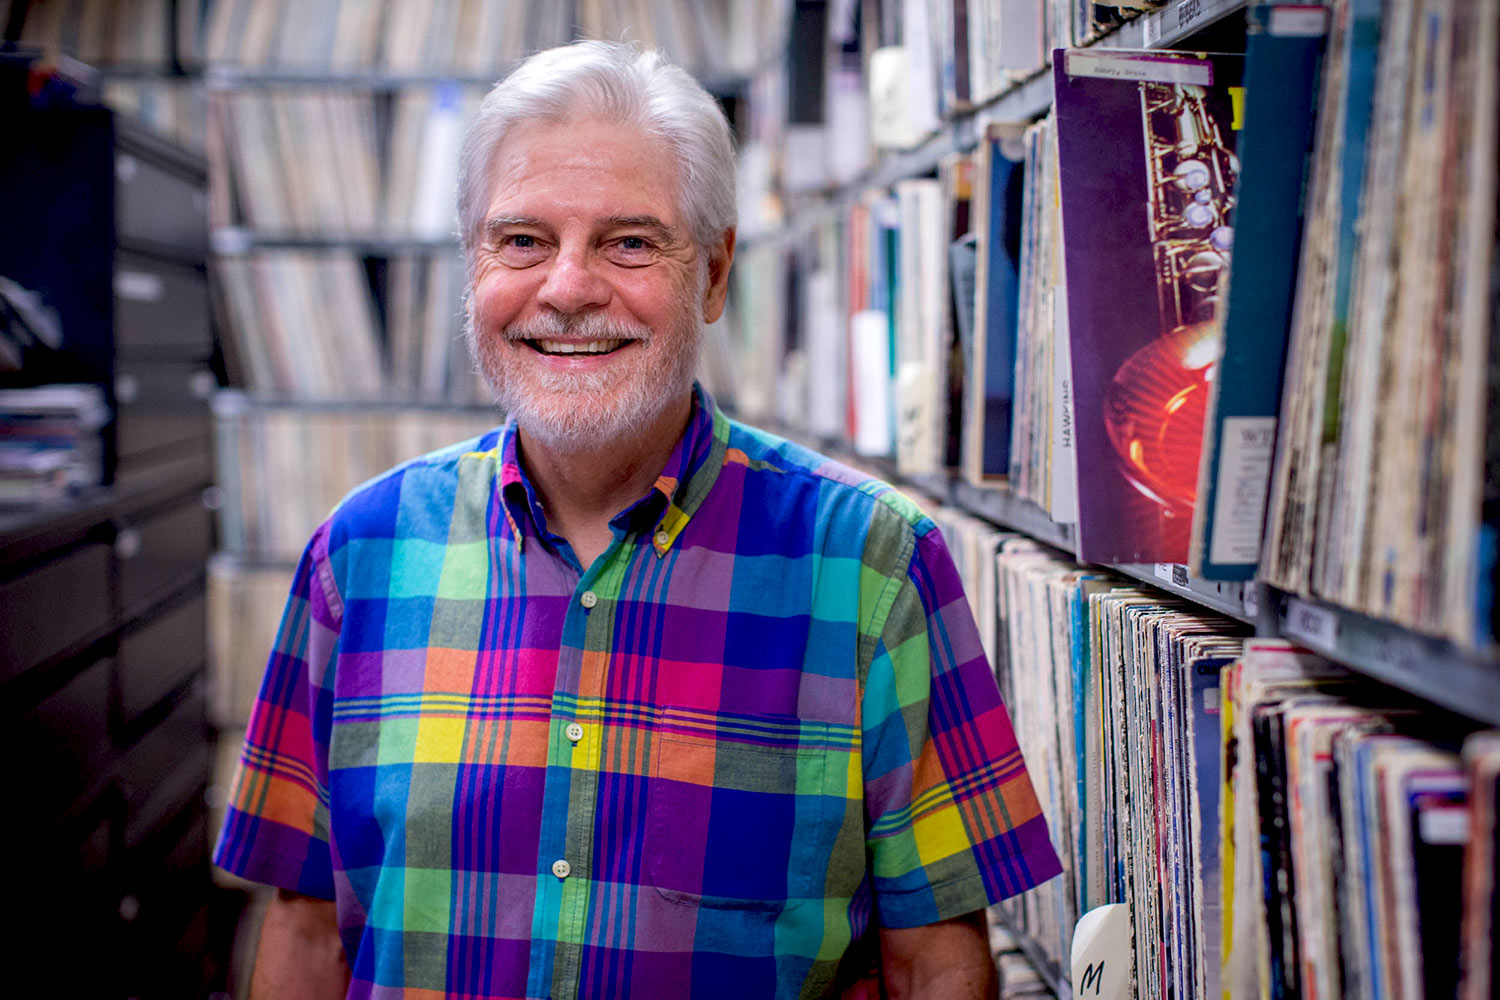 43 years into his career as a DJ at WTJU, Dave Rogers still loves going into work on Friday nights. (Photo by Sanjay Suchak)